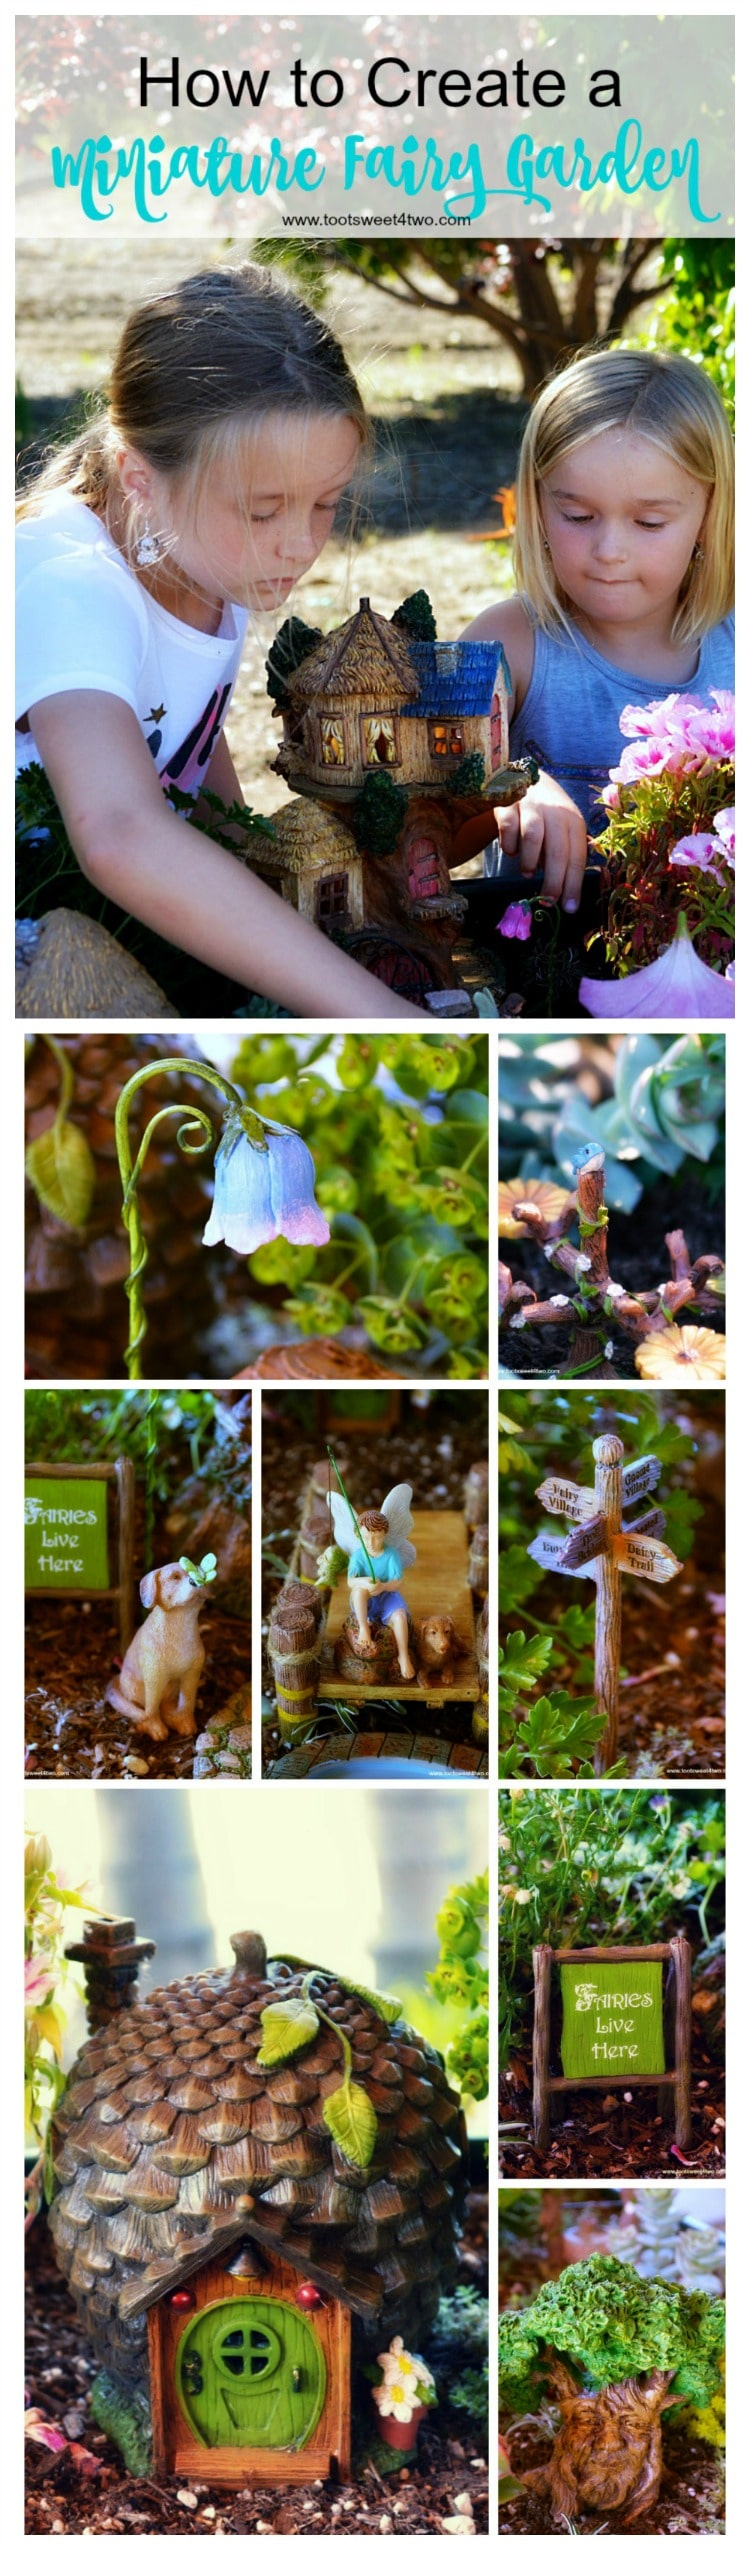 How To Create A Magical Miniature Fairy Garden Toot